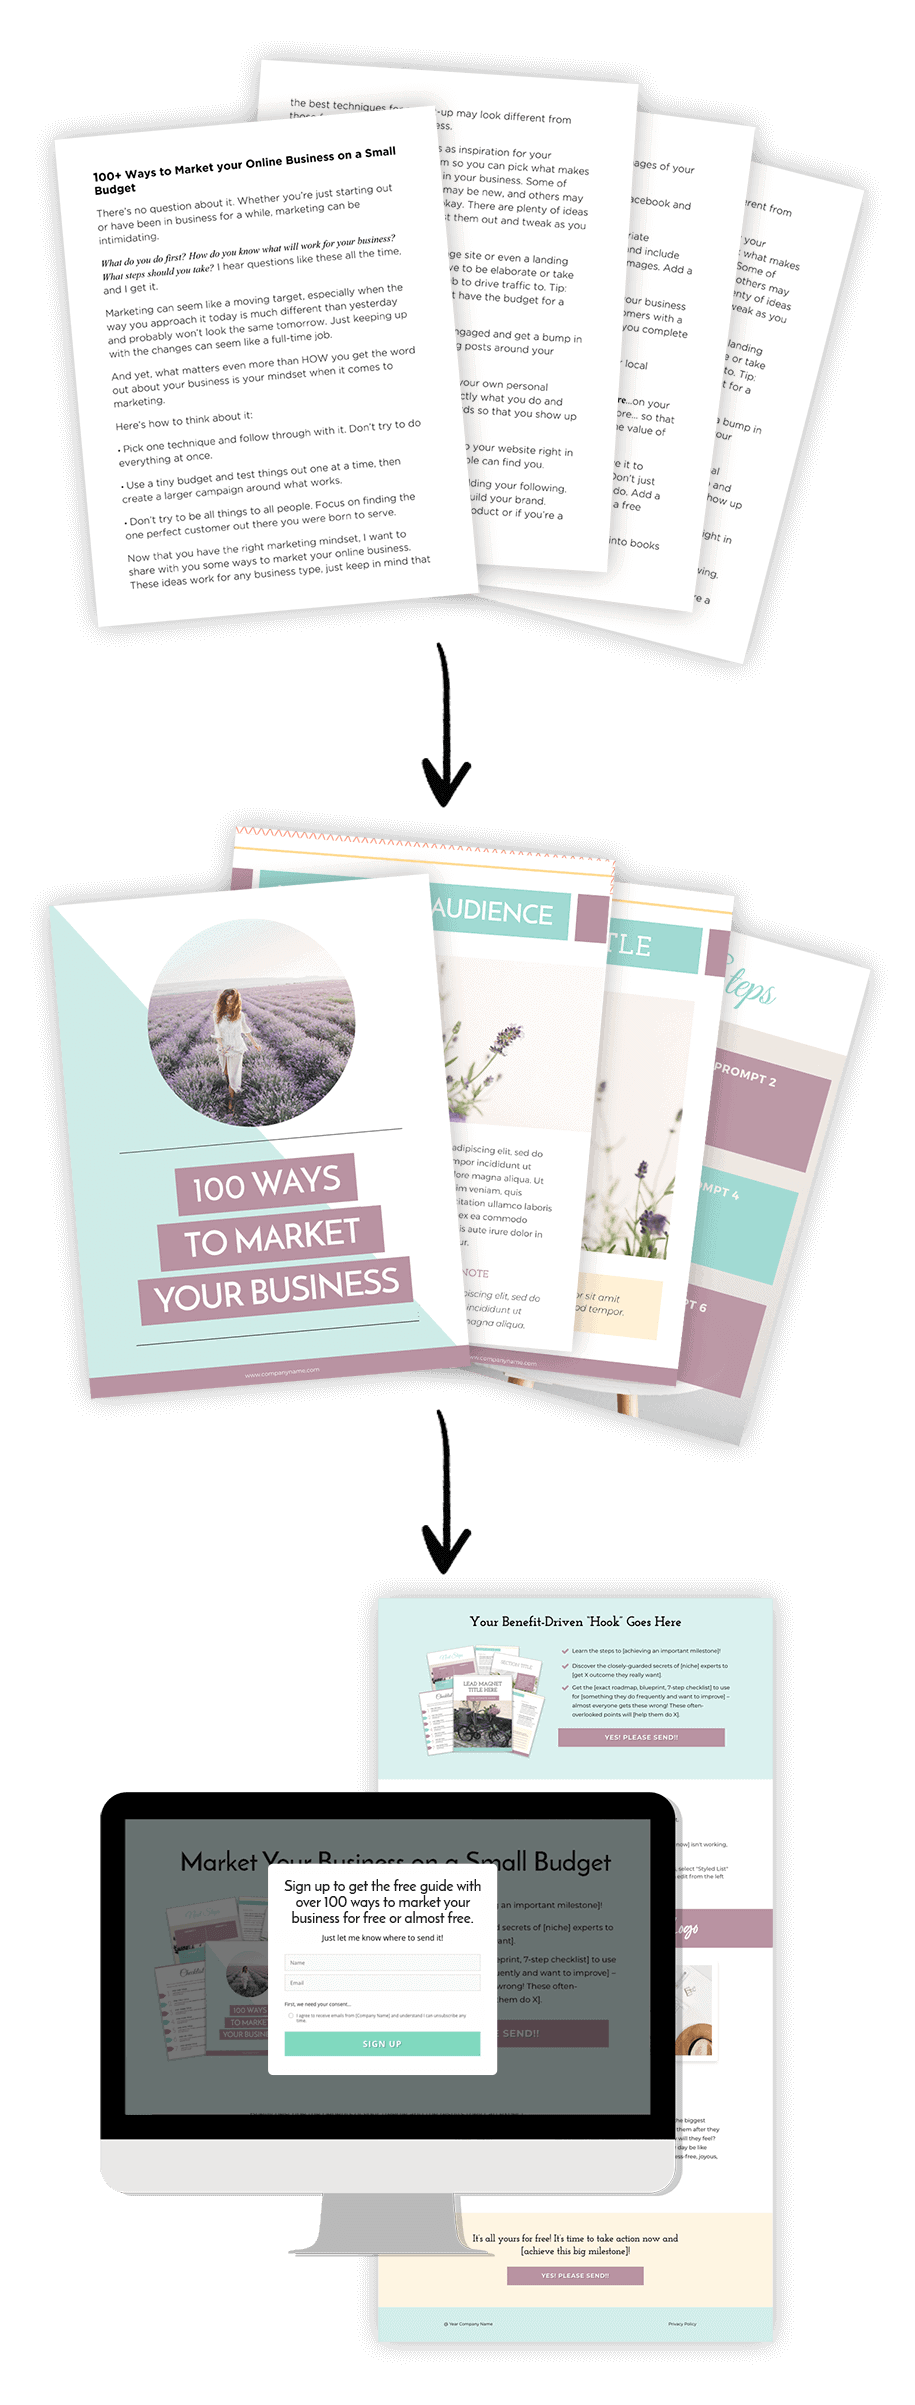 from ebook idea to landing page + pop-up form